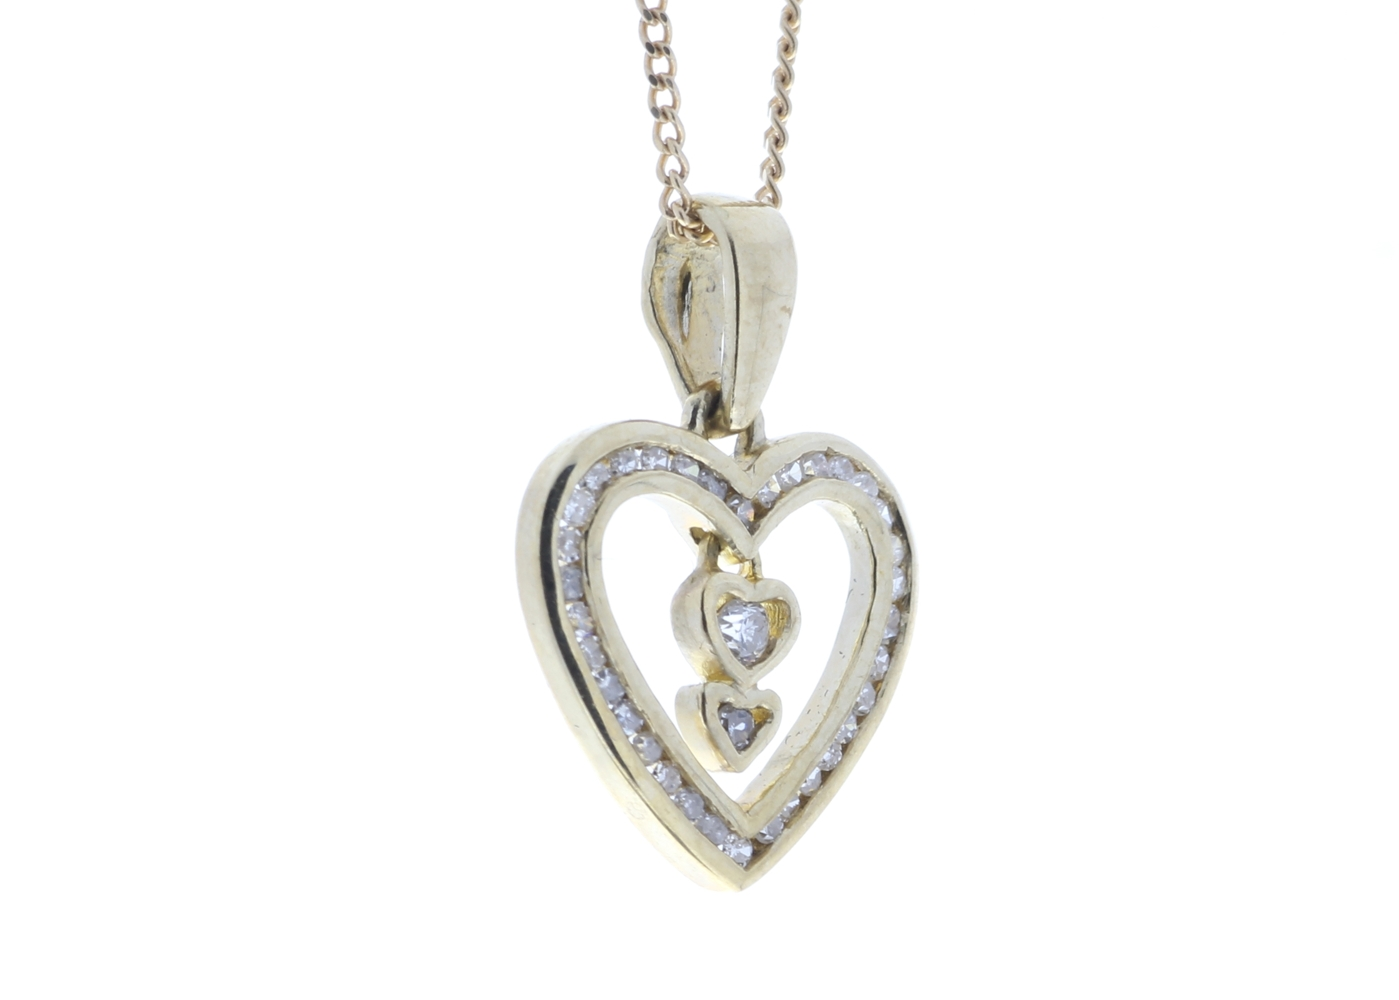 9ct Yellow Gold Heart Pendant 0.21 Carats - Image 2 of 5